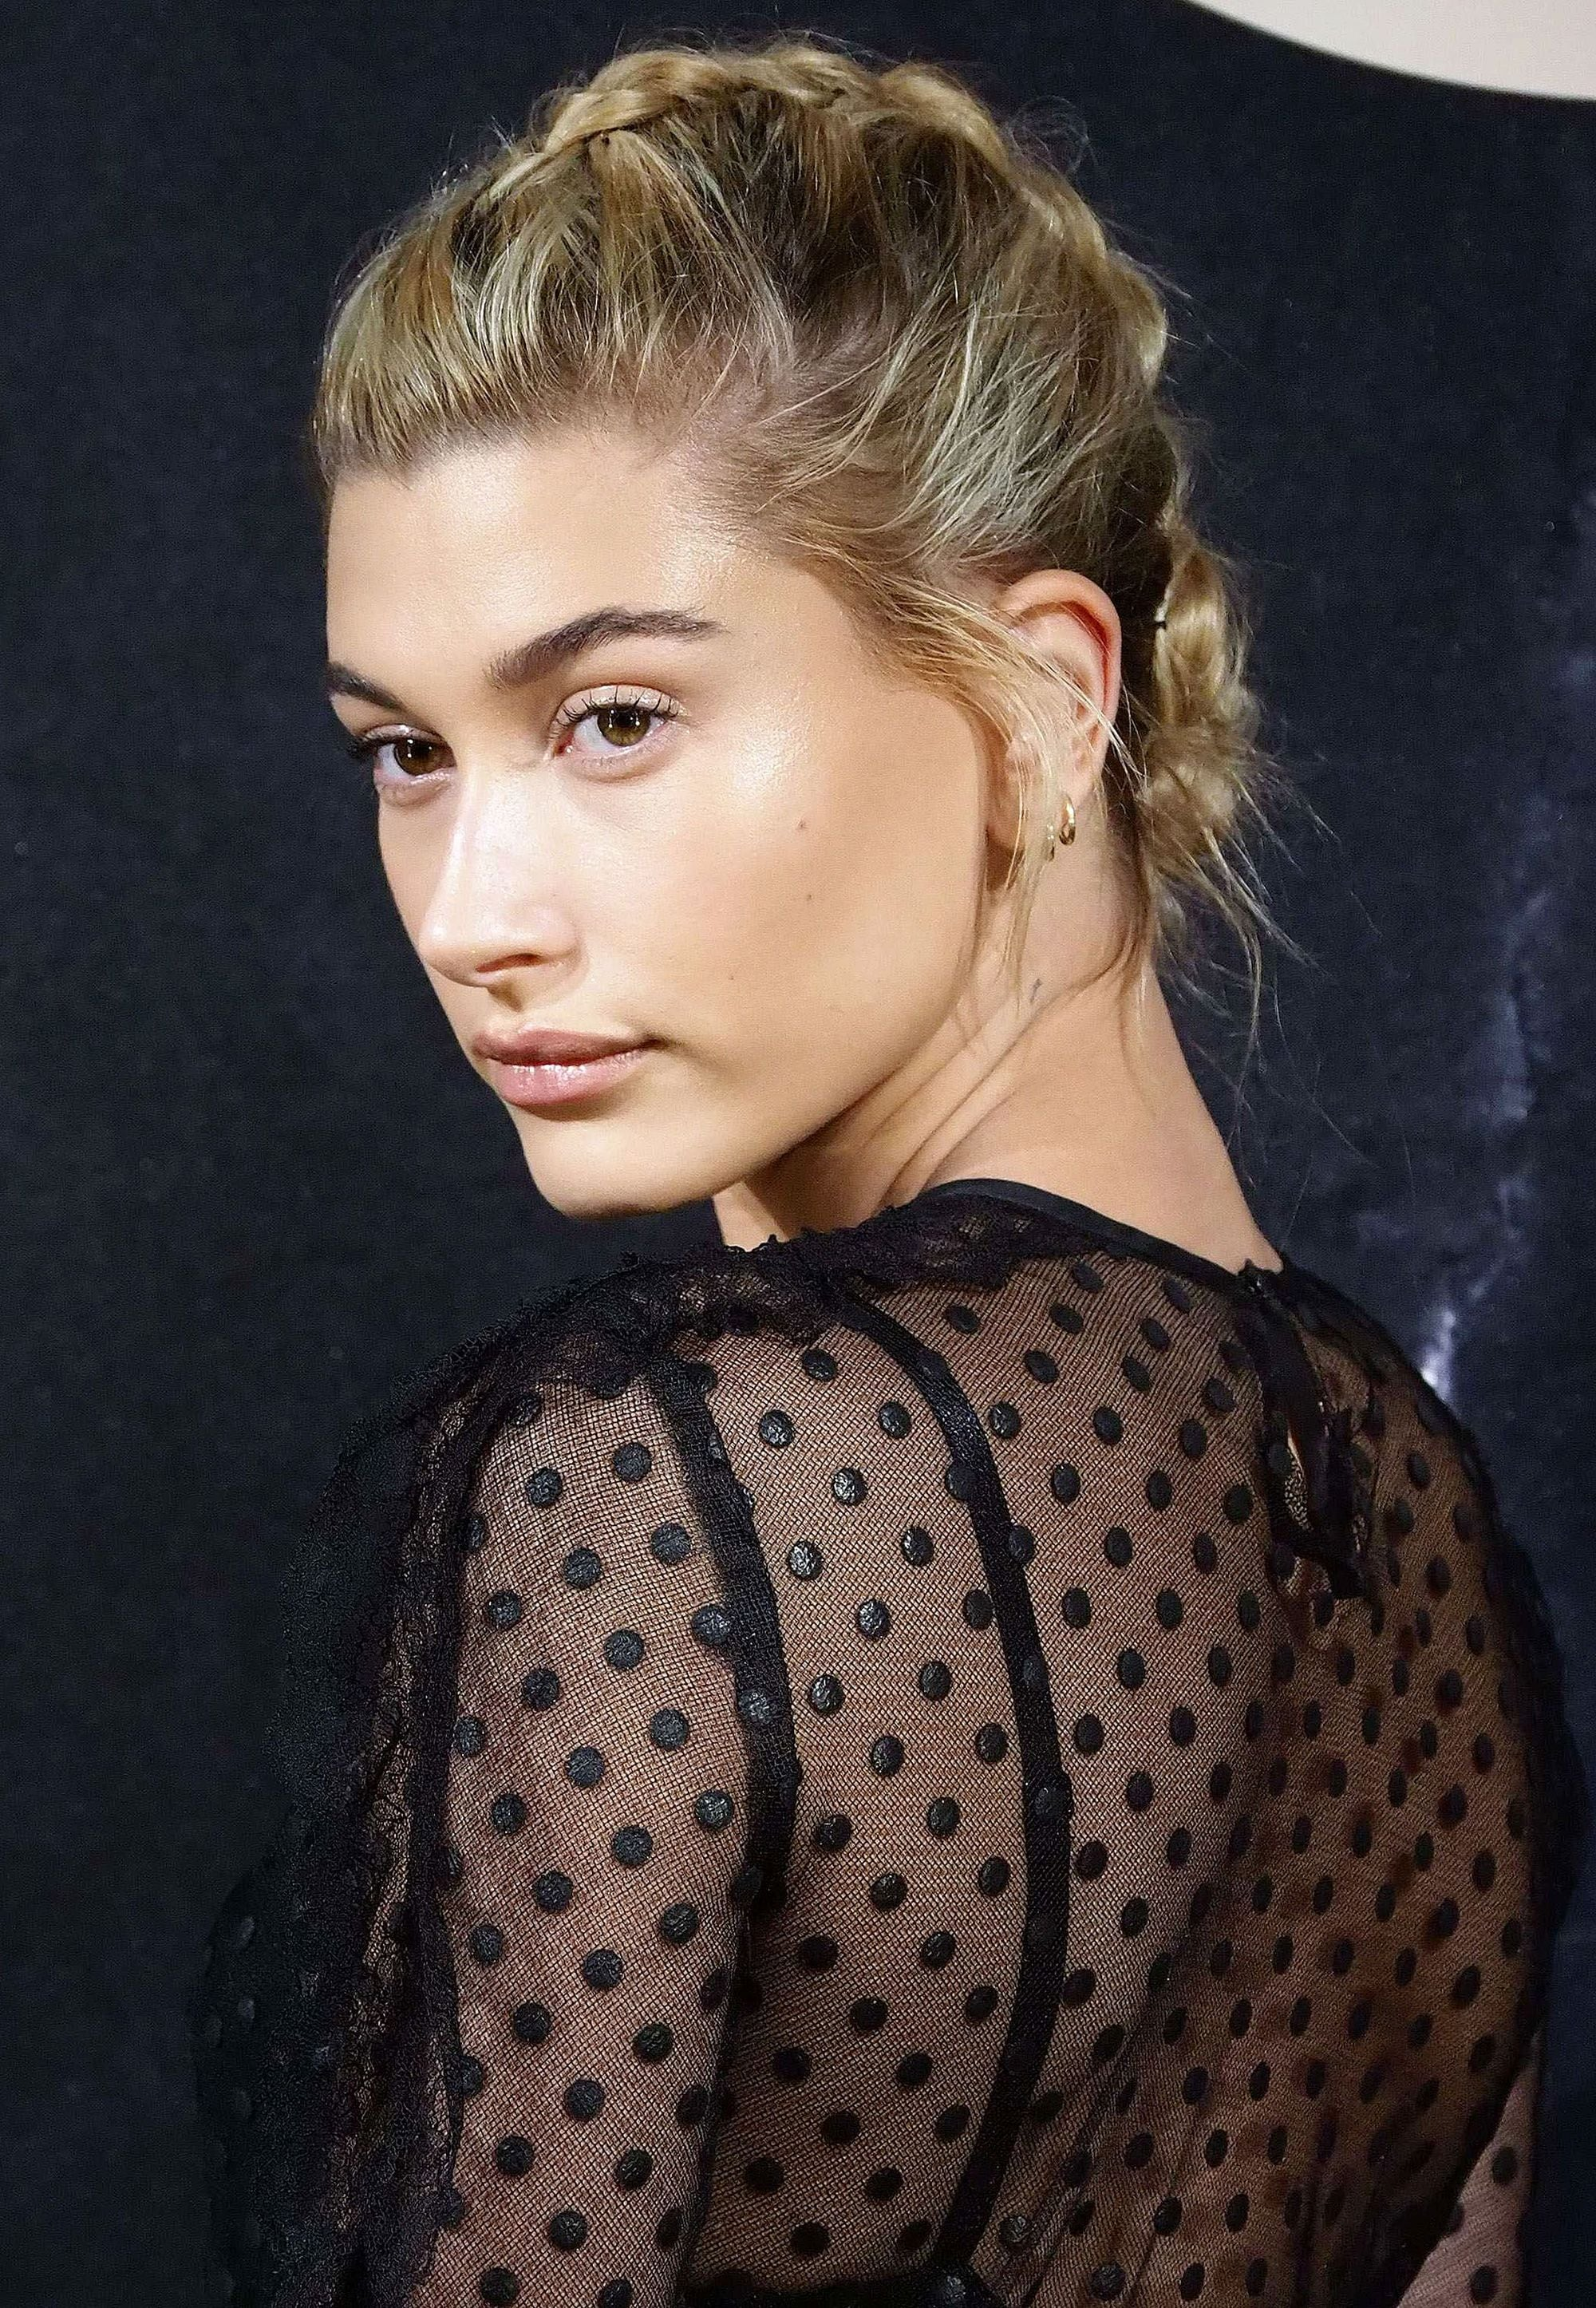 side view of hailey baldwin with blonde hair in french plait